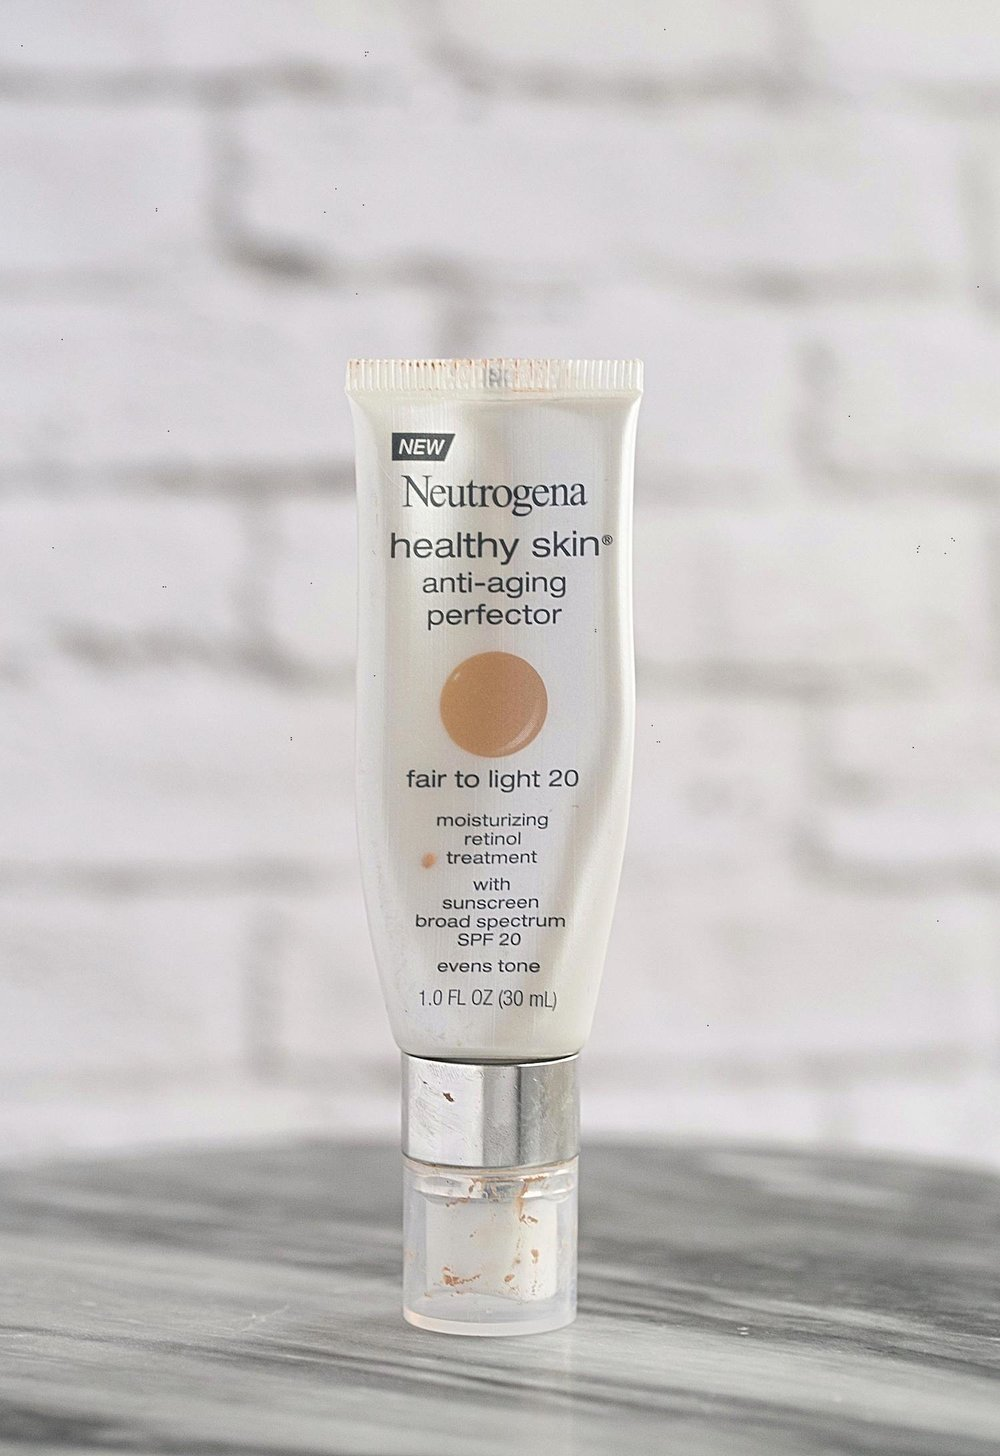 New Favorite Beauty Buys- Neutrogena Healthy Skin Tinted Moisturizer | TrufflesandTrends.com